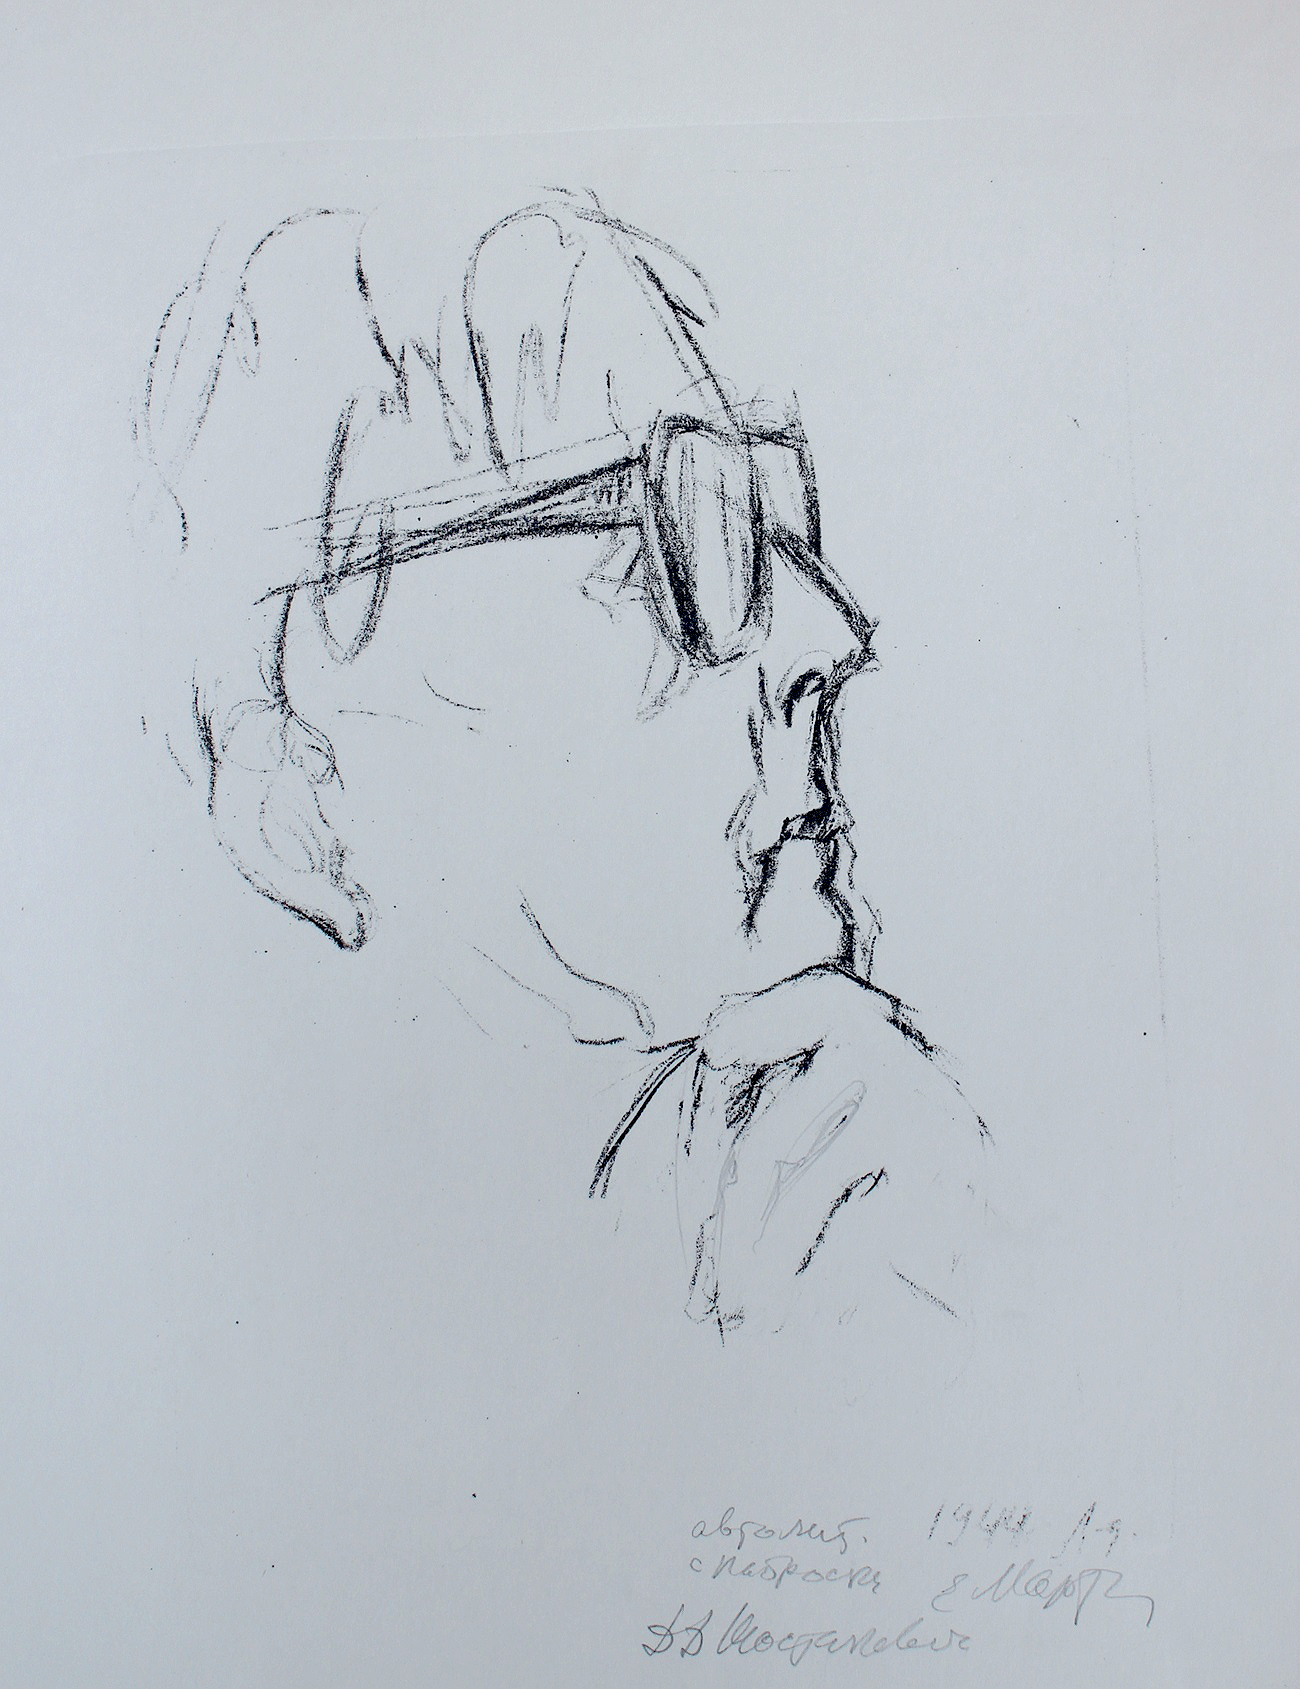 There is also a portrait of Russian composer Dmitry Shostakovich, sketched at a 1944 performance of his Leningrad Symphony. // Picture: